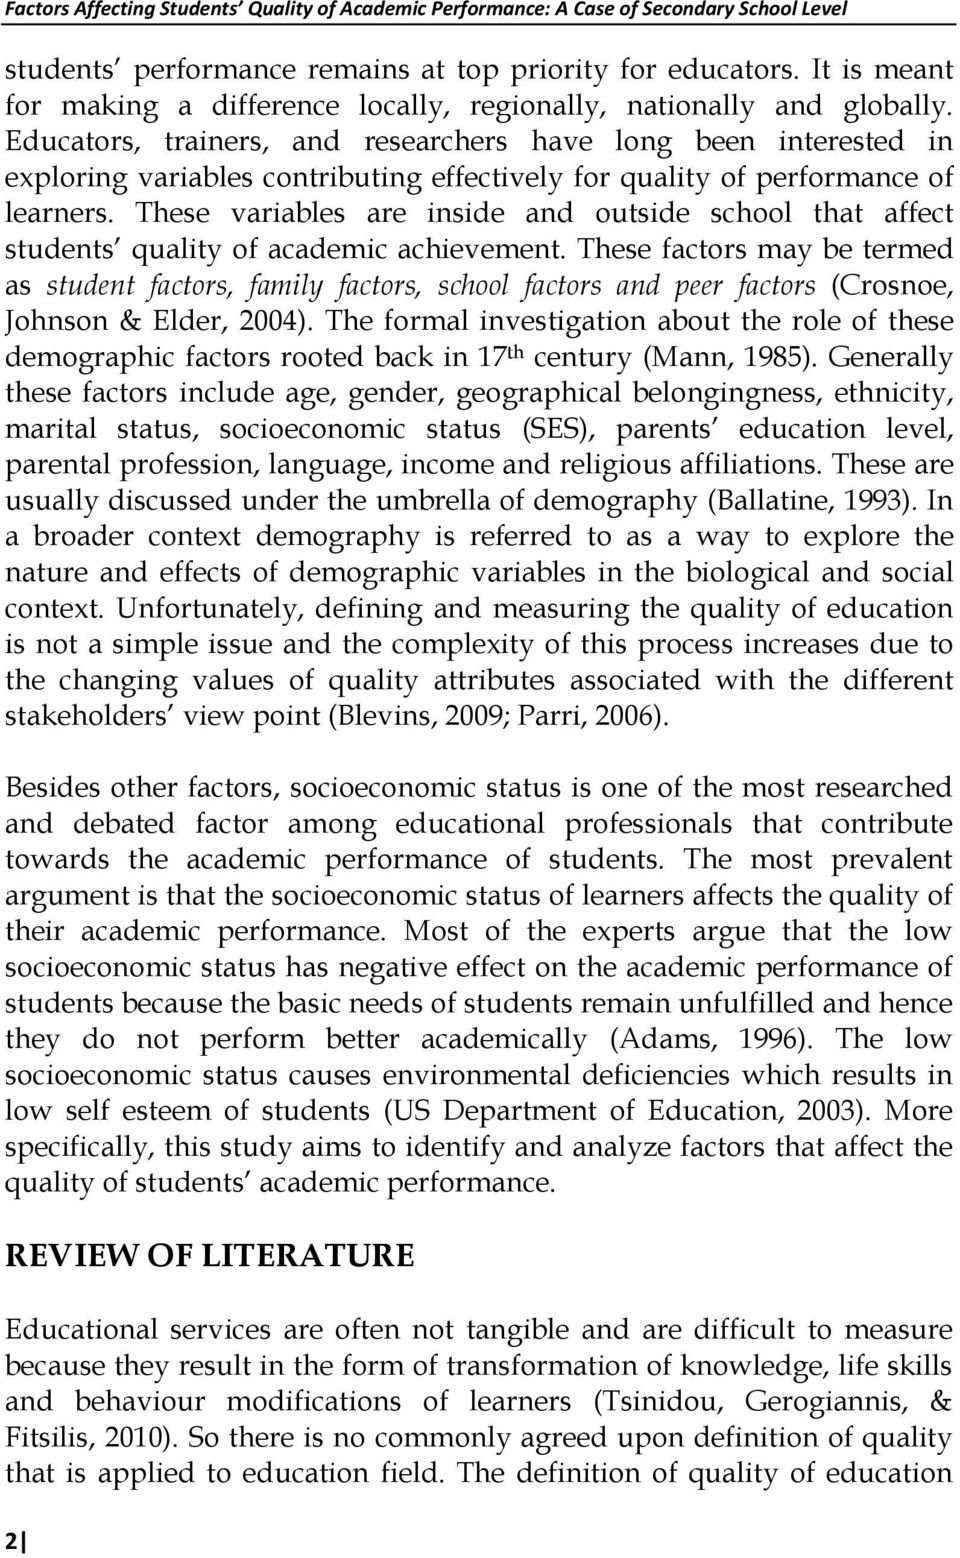 factors affecting behaviour of learners